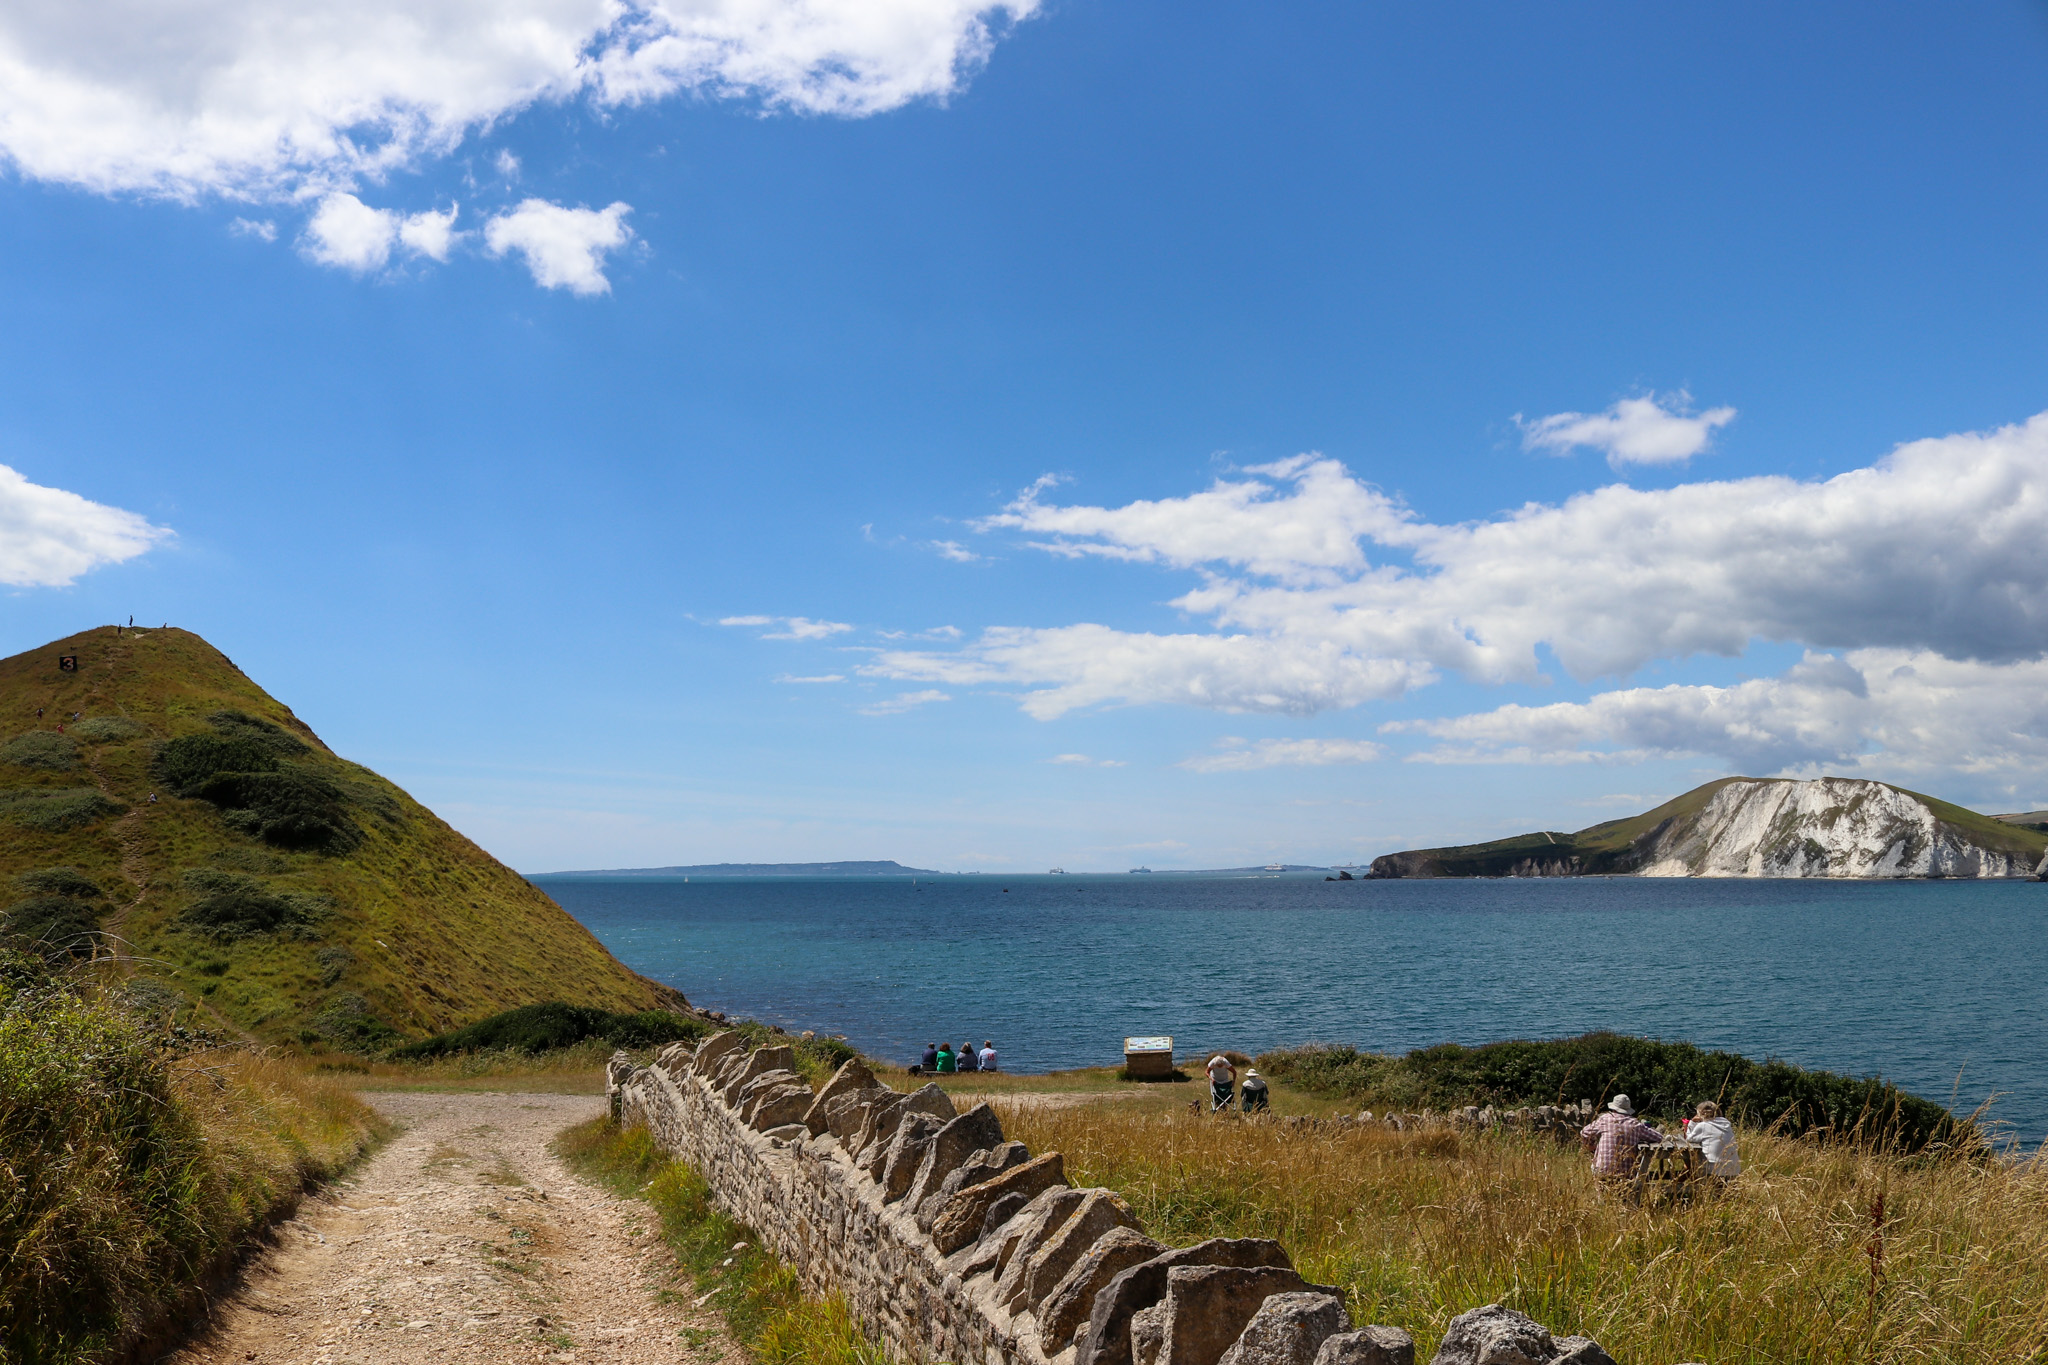 Road leading to Worbarrow Bay